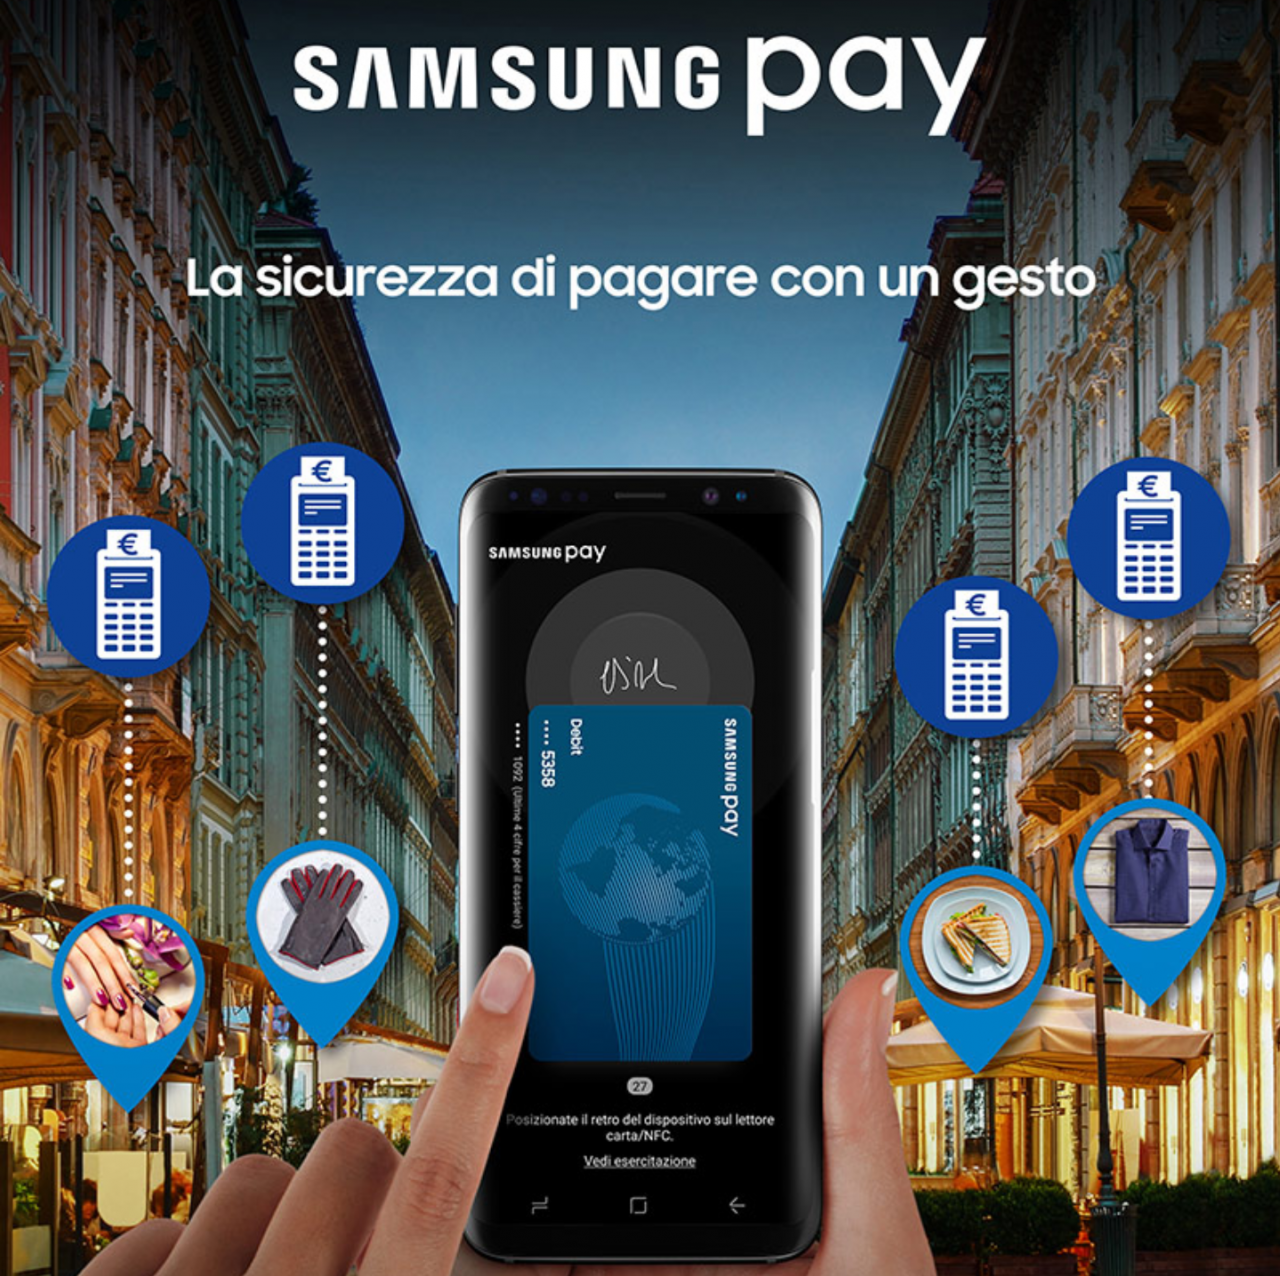 images-samsung-pay